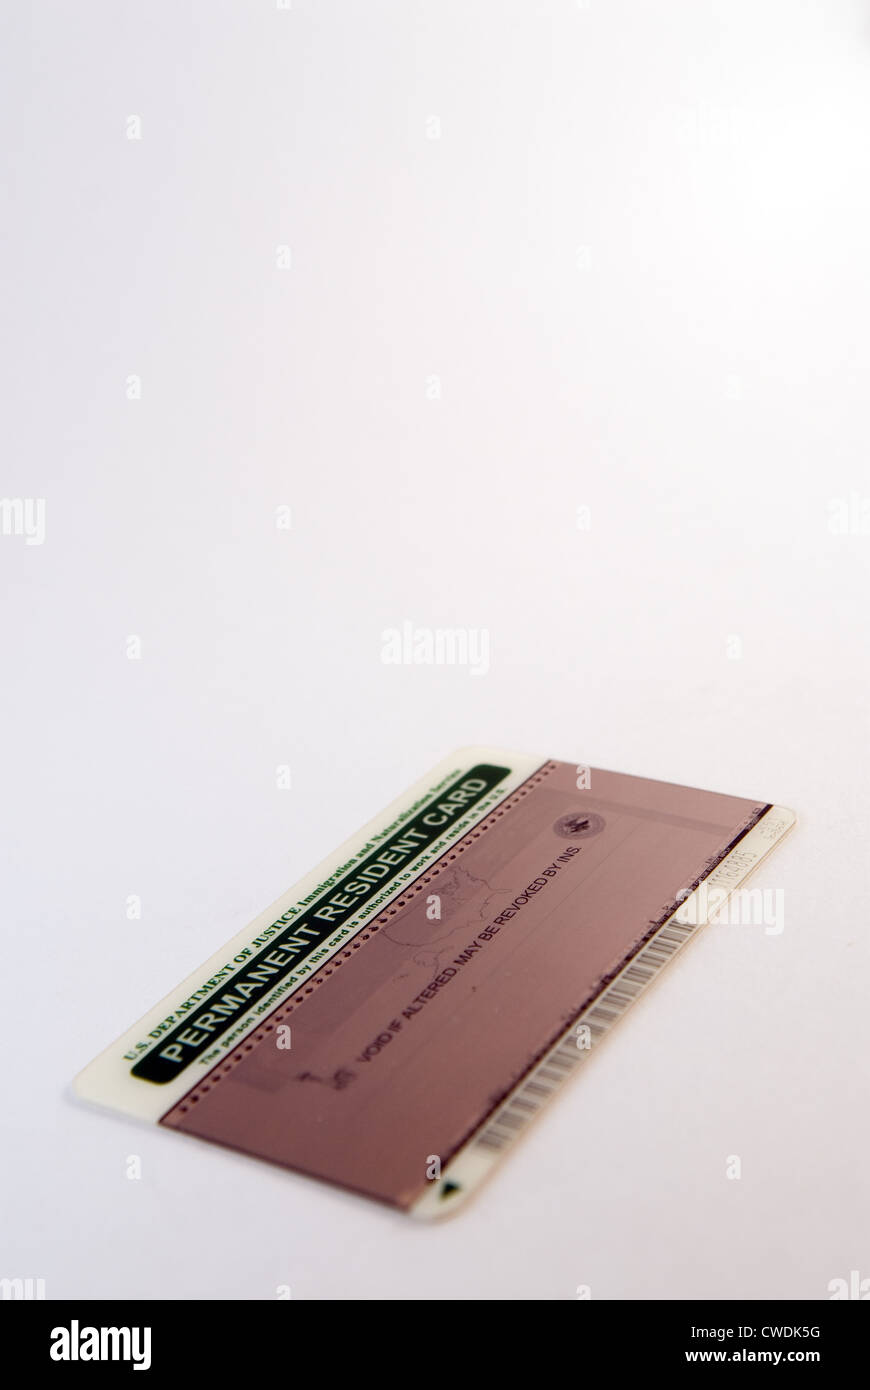 USA Permanent Resident Card Stock Photo